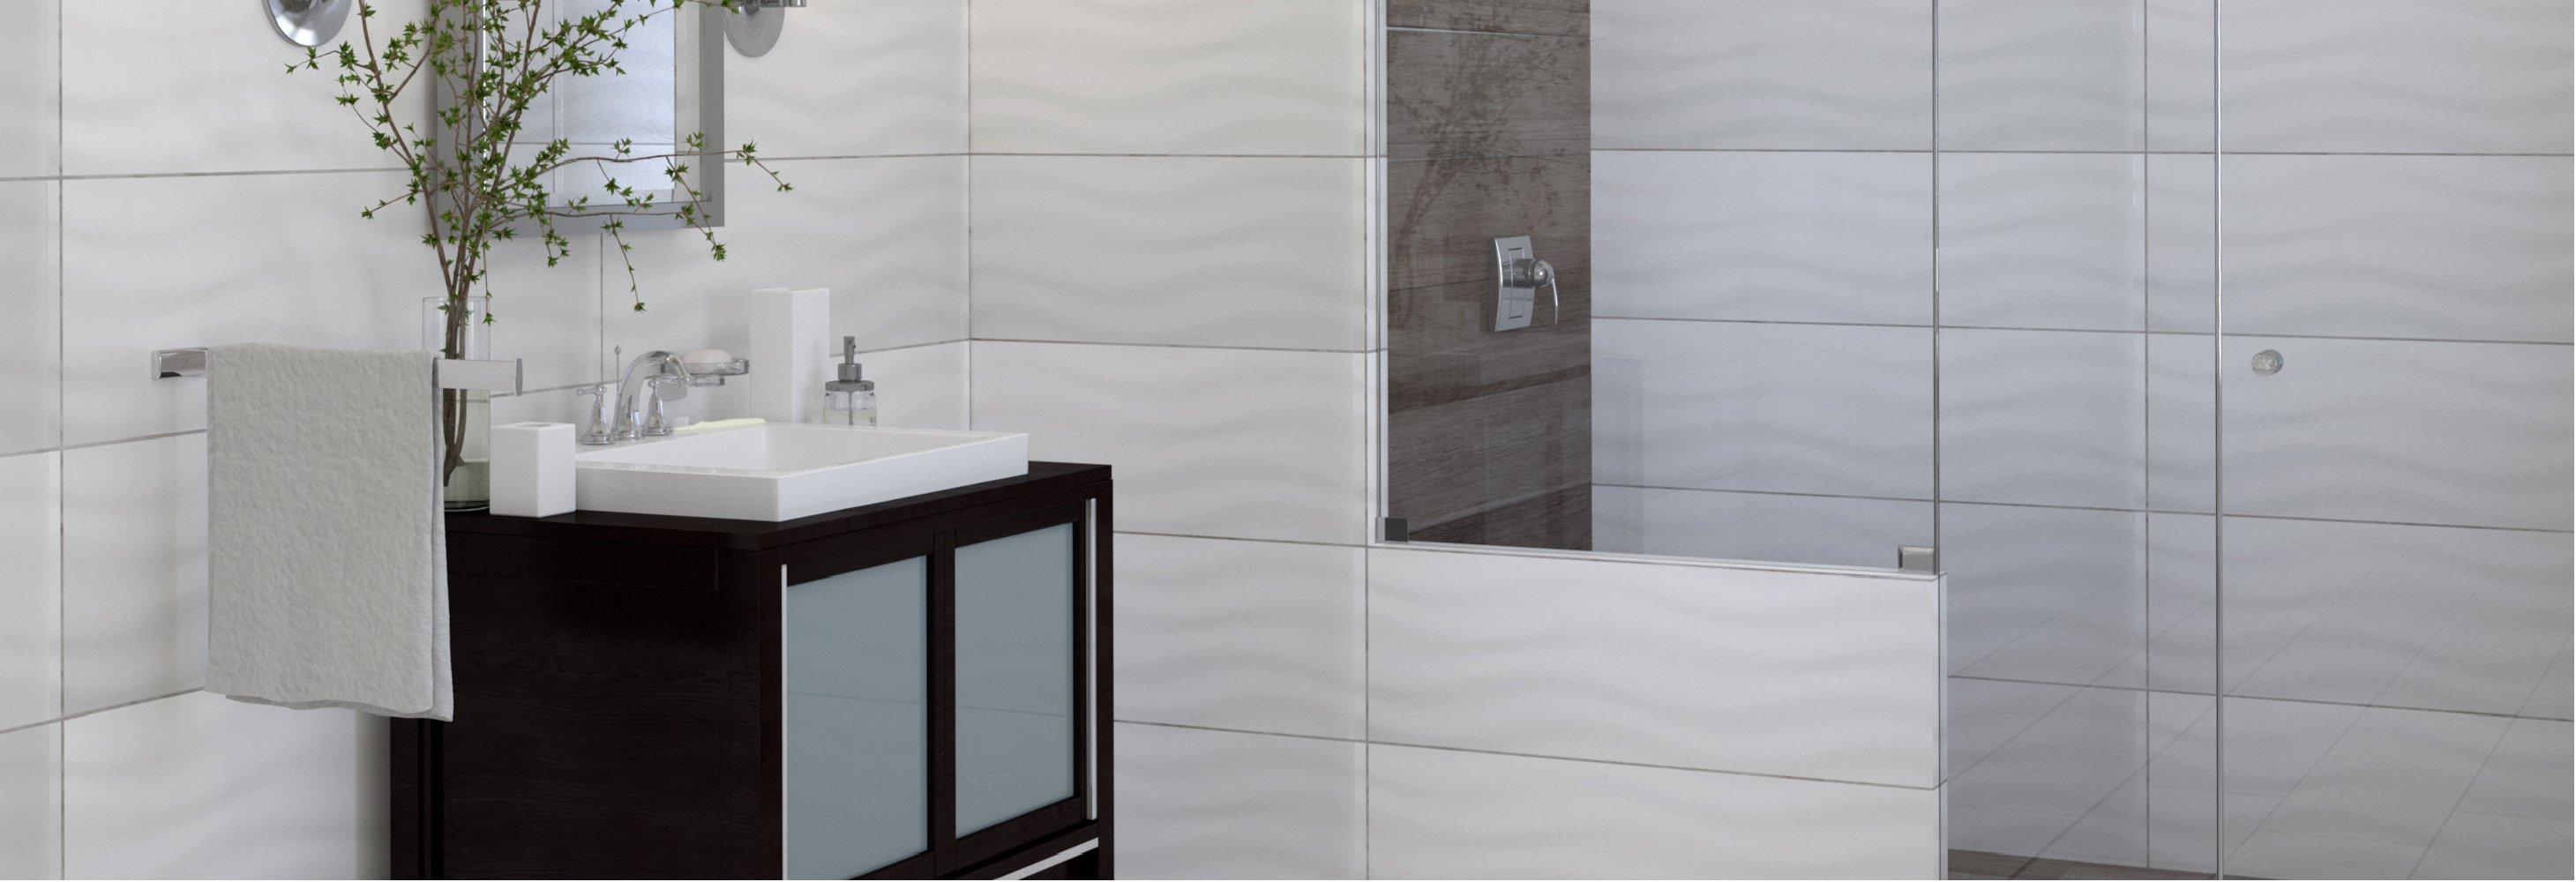 Shiny tile floor shining ideas shiny tile floor idea texture of high gloss polished tile dailygadgetfo Image collections